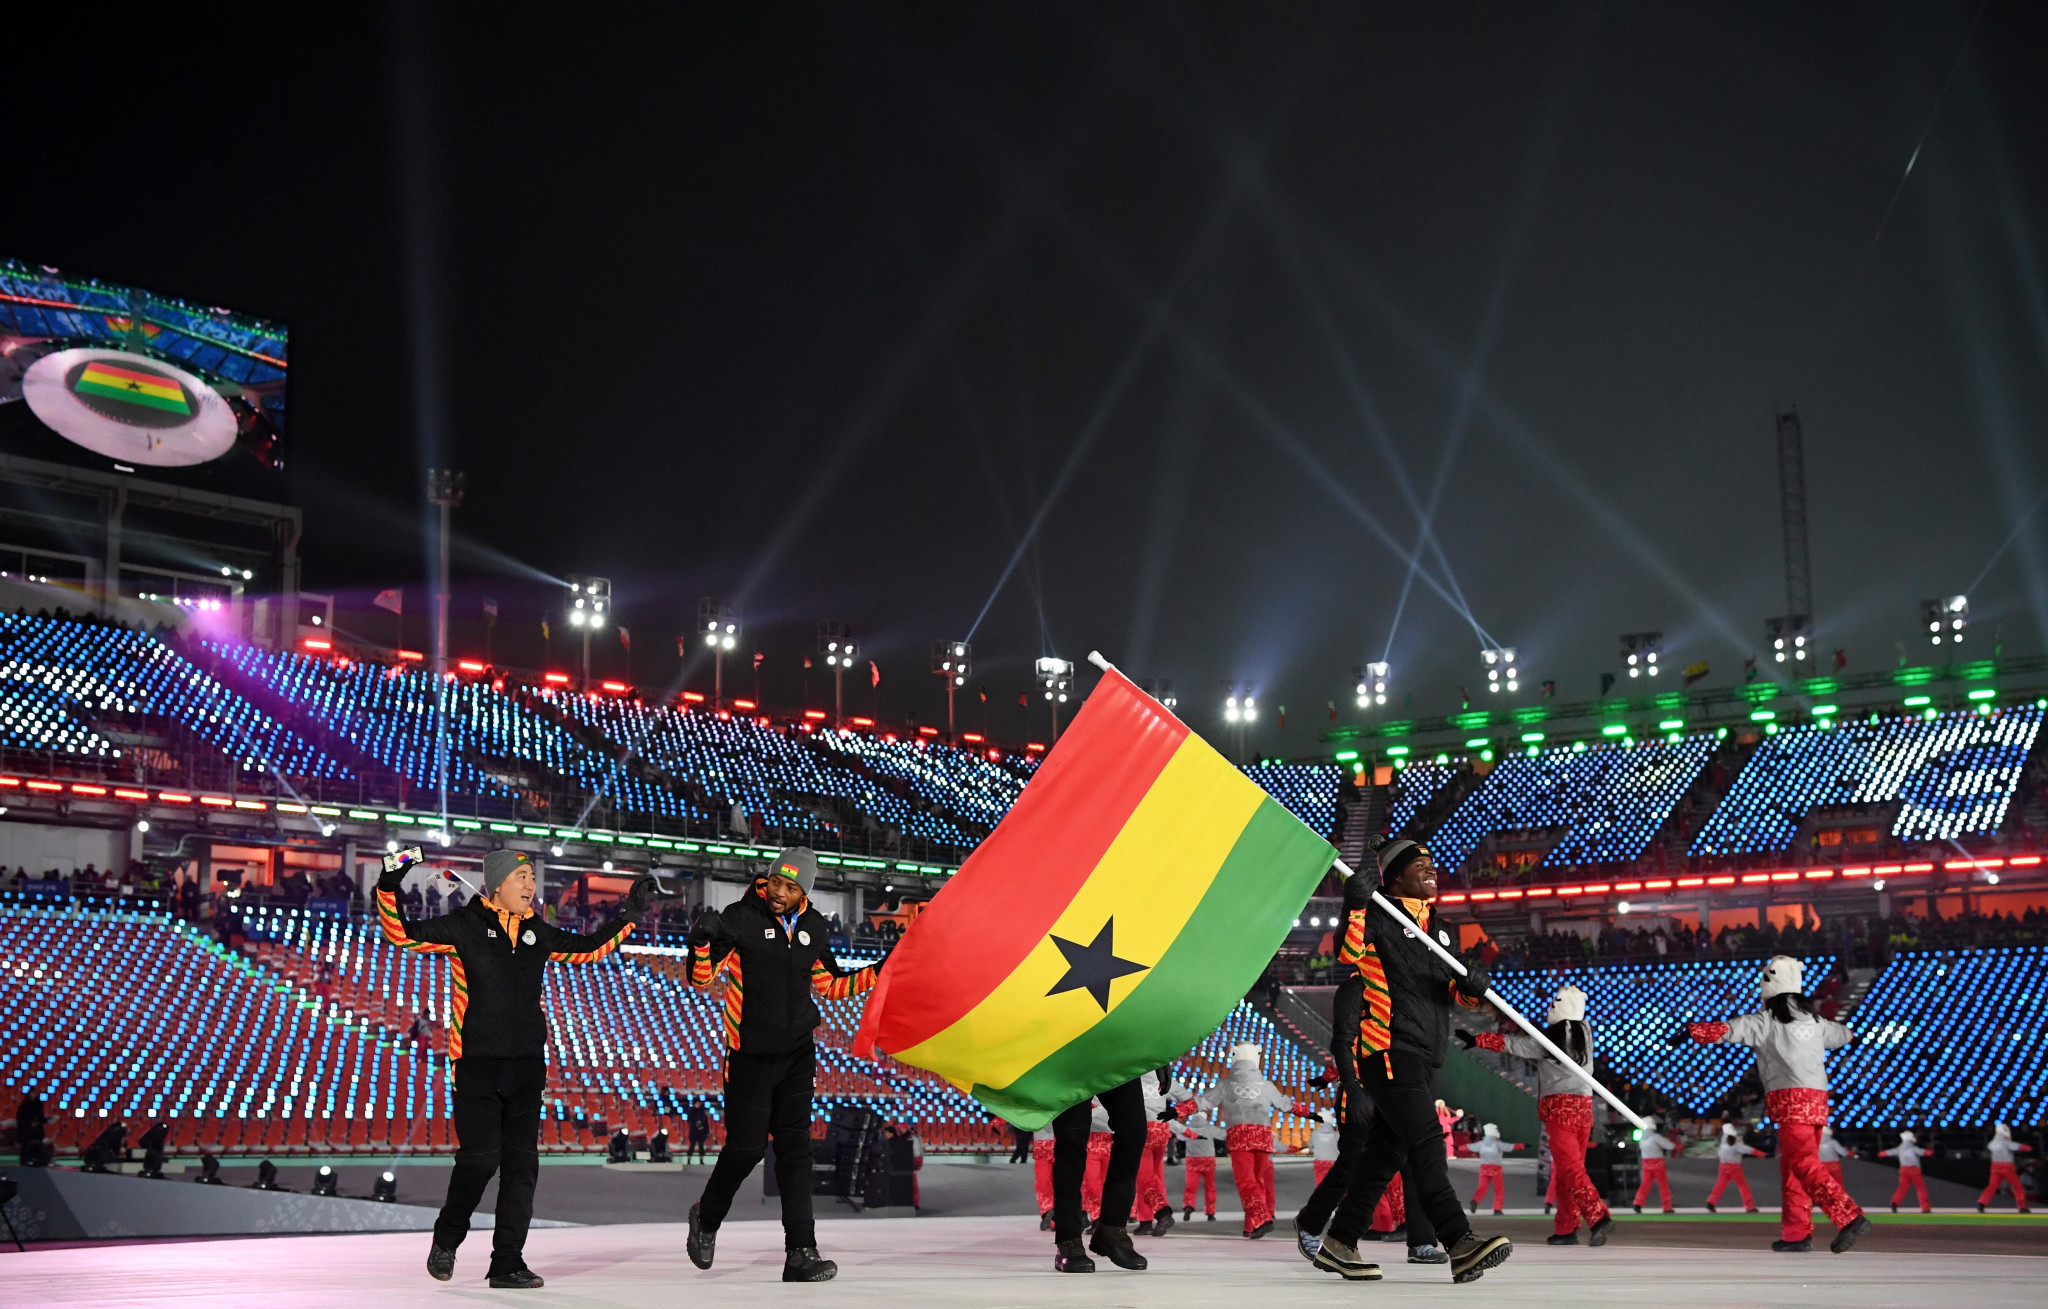 Ghana has won four Olympic medals in its history ©Getty Images